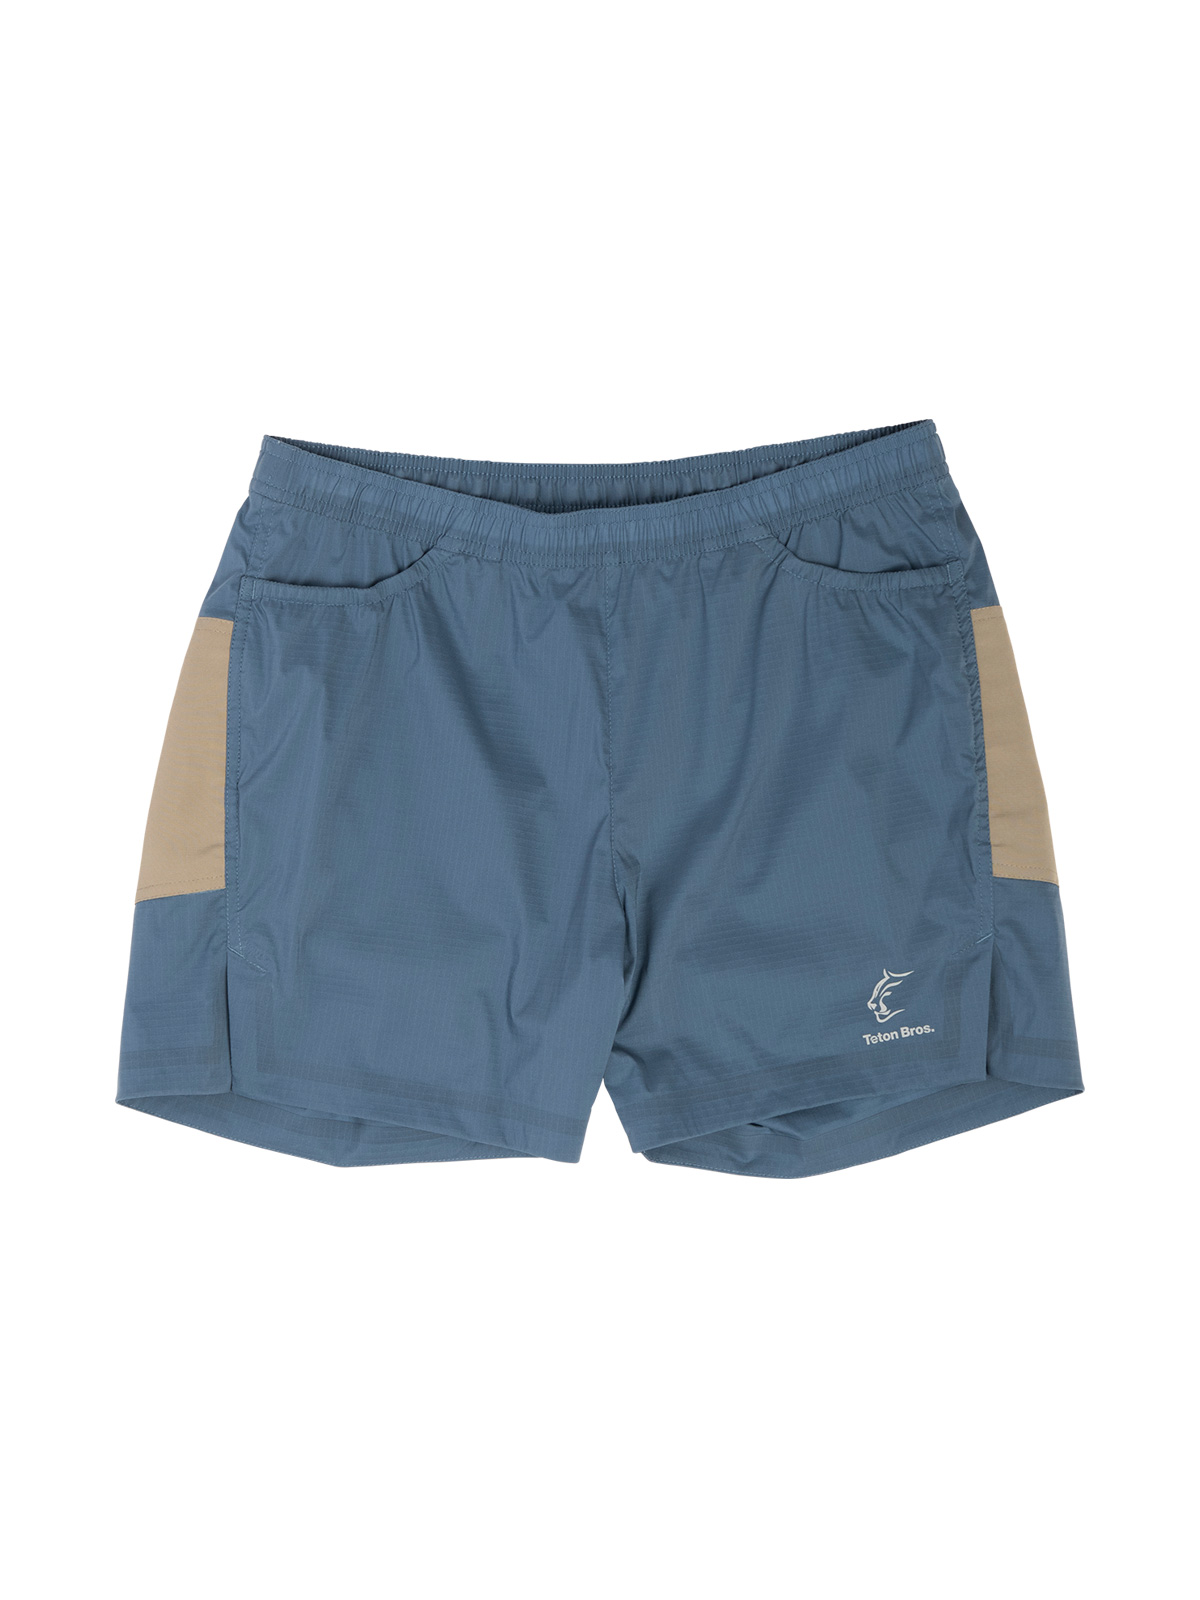 ELV1000 5in Hybrid Short (Men)